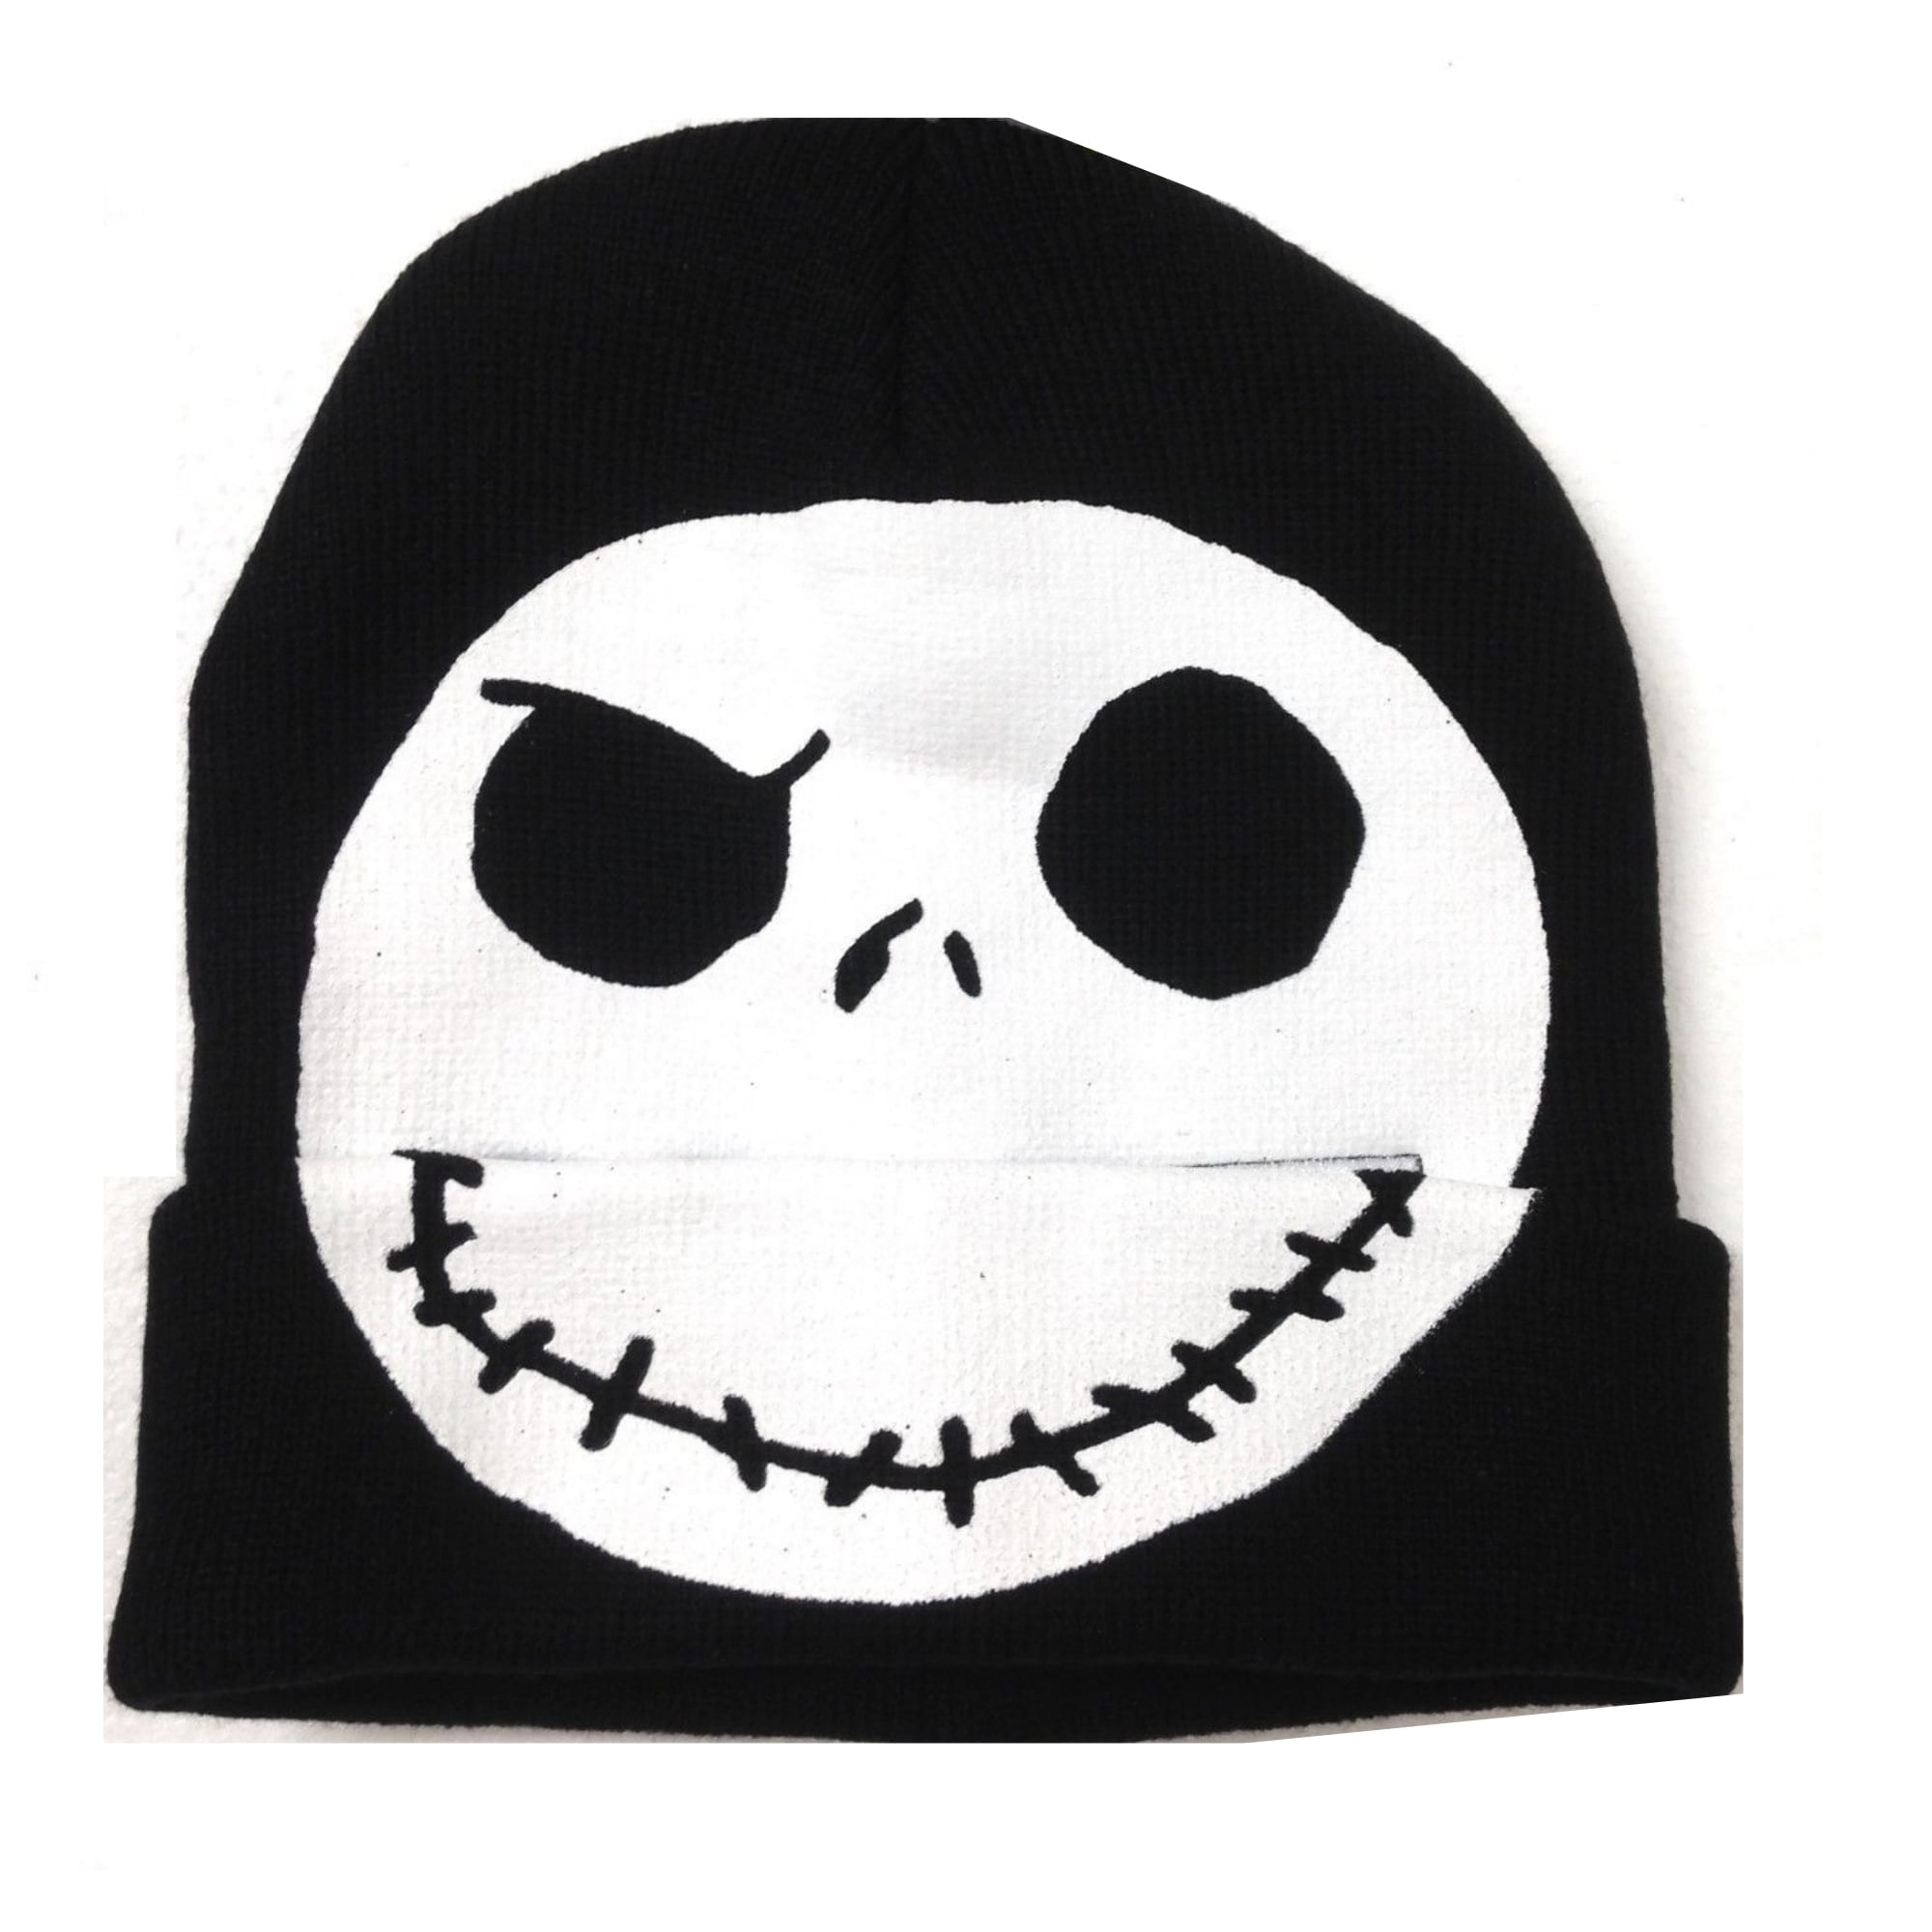 2a953cb46e0 Shop Disney Nightmare Before Christmas Jack Skellington Flip-Down Beanie  Hat - Free Shipping On Orders Over  45 - Overstock - 24784183